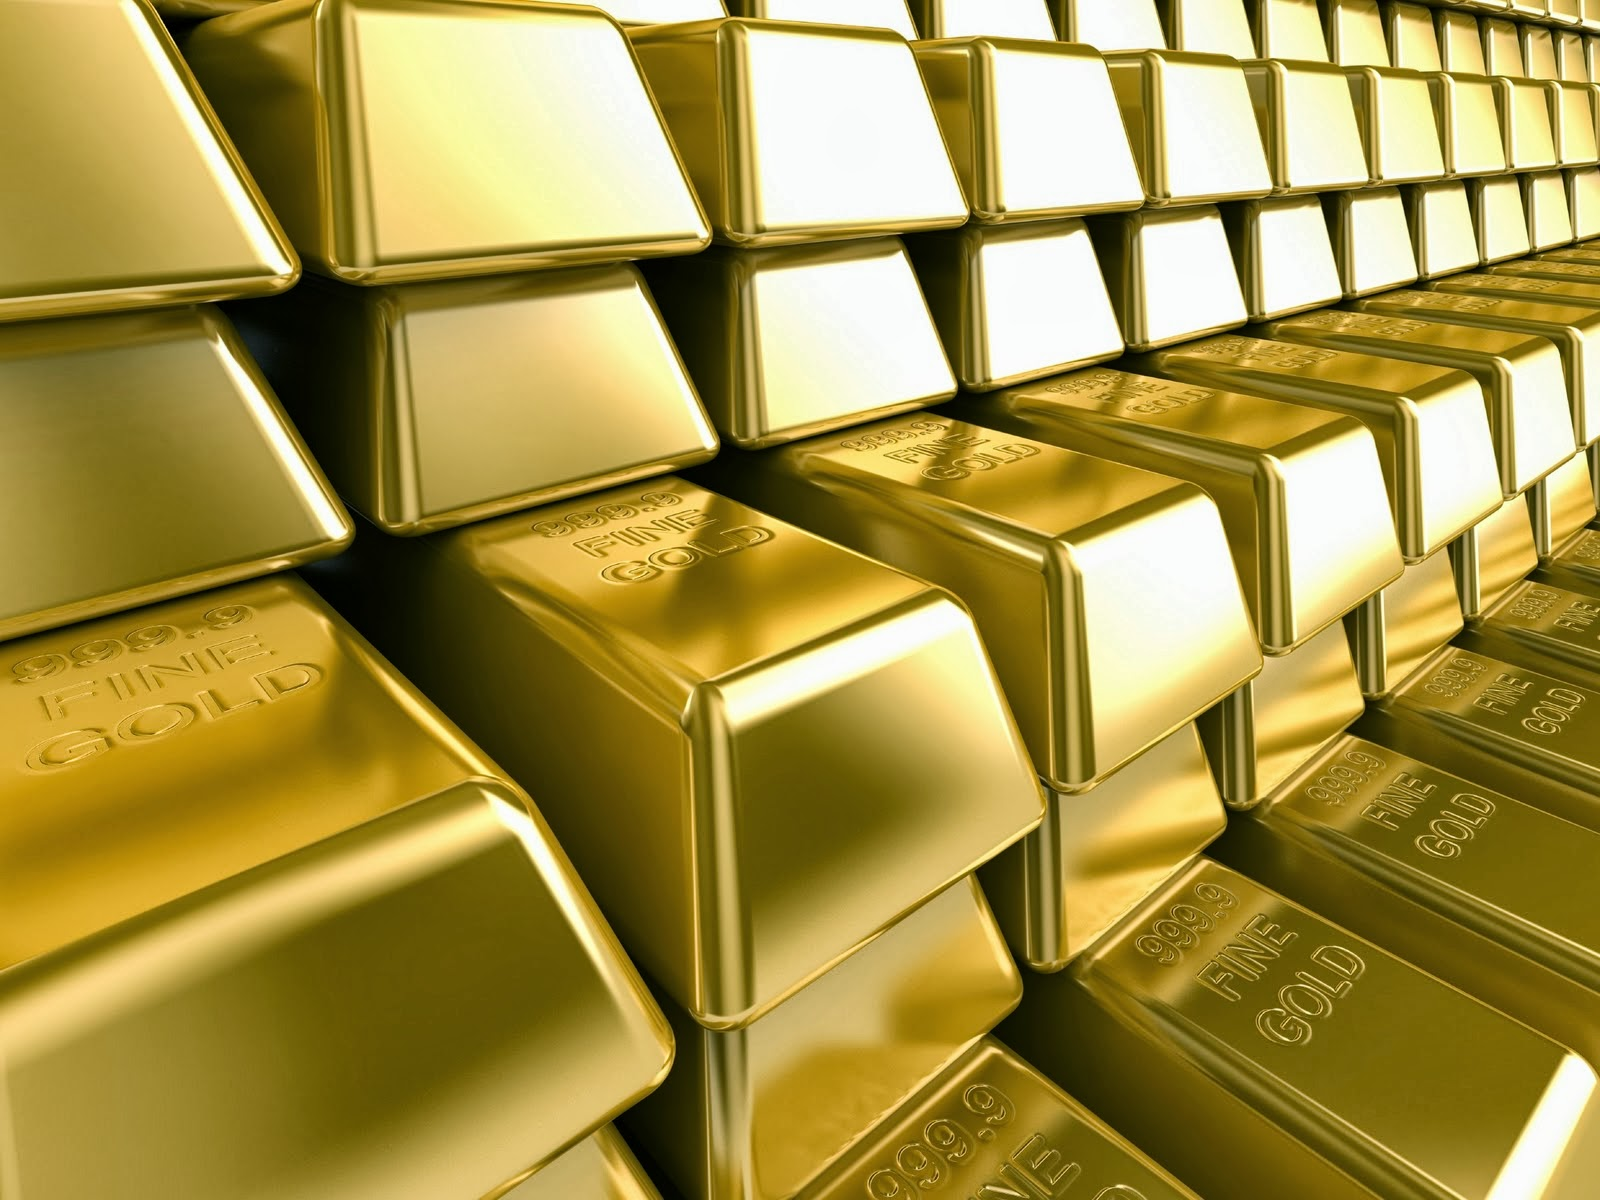 gallery for gold bars wallpaper background